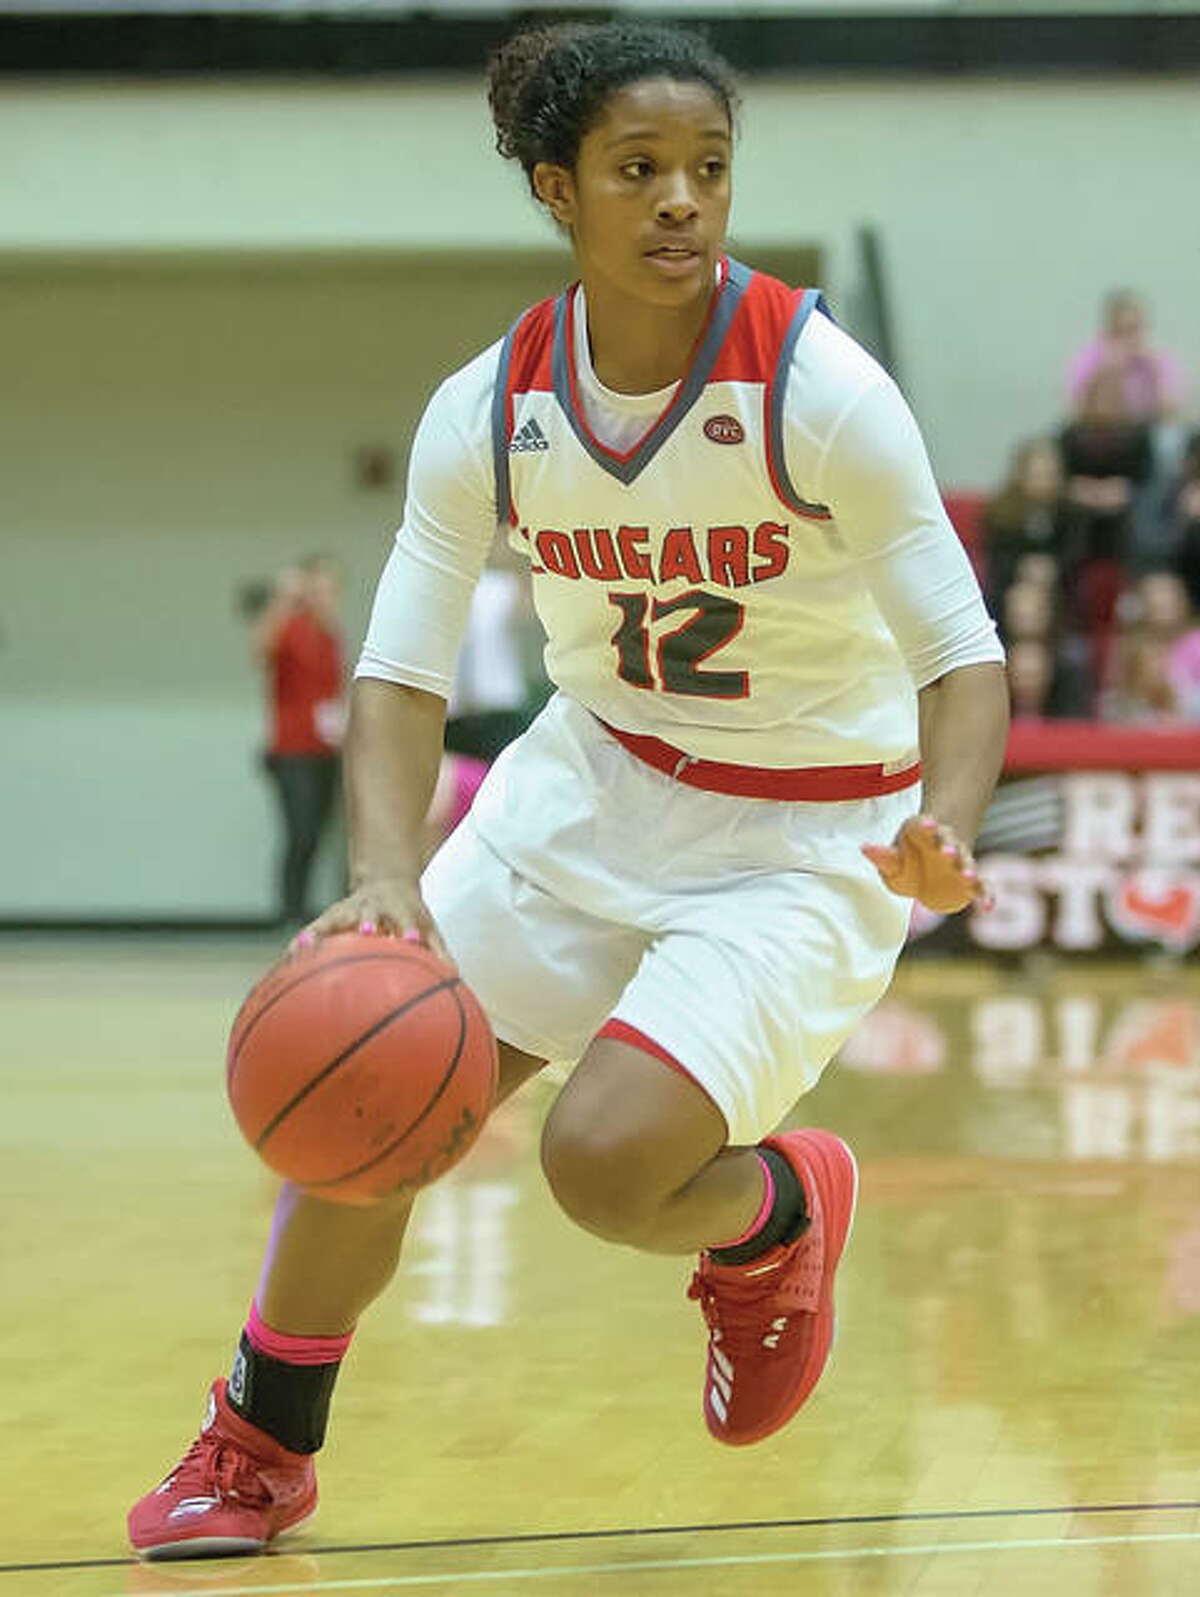 SIUE's Lauren White, a fifth-year senior from Edwardsville, and the Cougars celebrated a key OVC women's basketball victory over Jacksonville State on Saturday night at Vadalabene Center in Edwardsville.